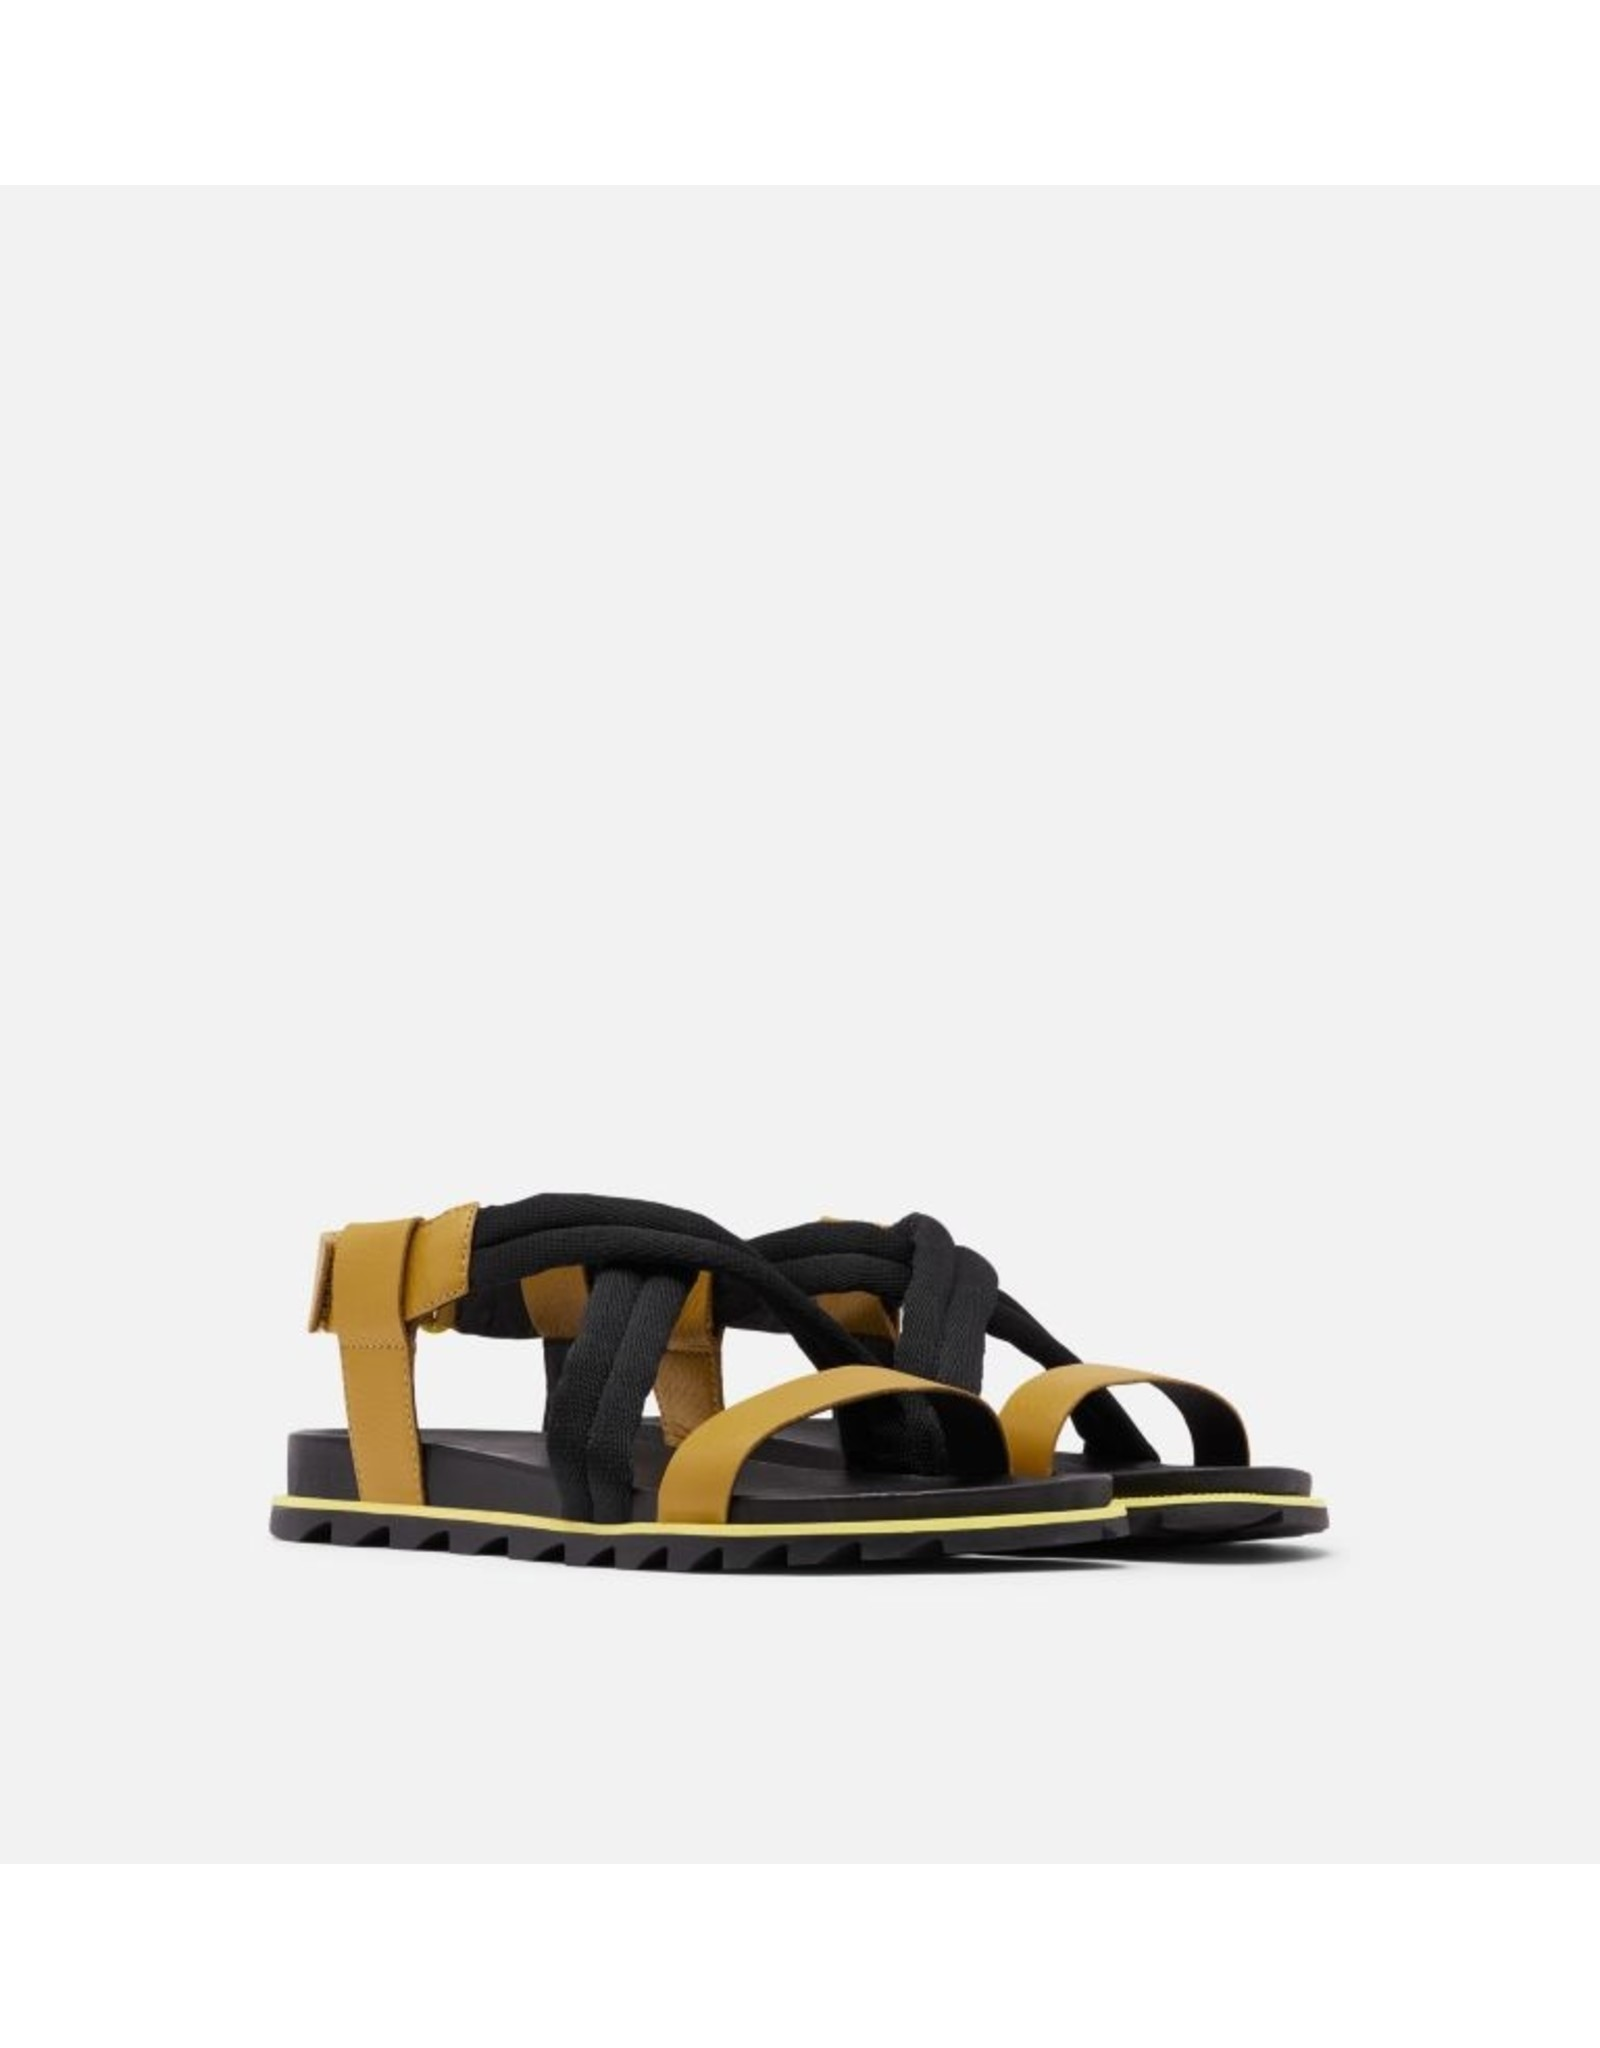 SOREL WOMEN'S ROAMING DECON SANDAL-DIOXIDE GOLD